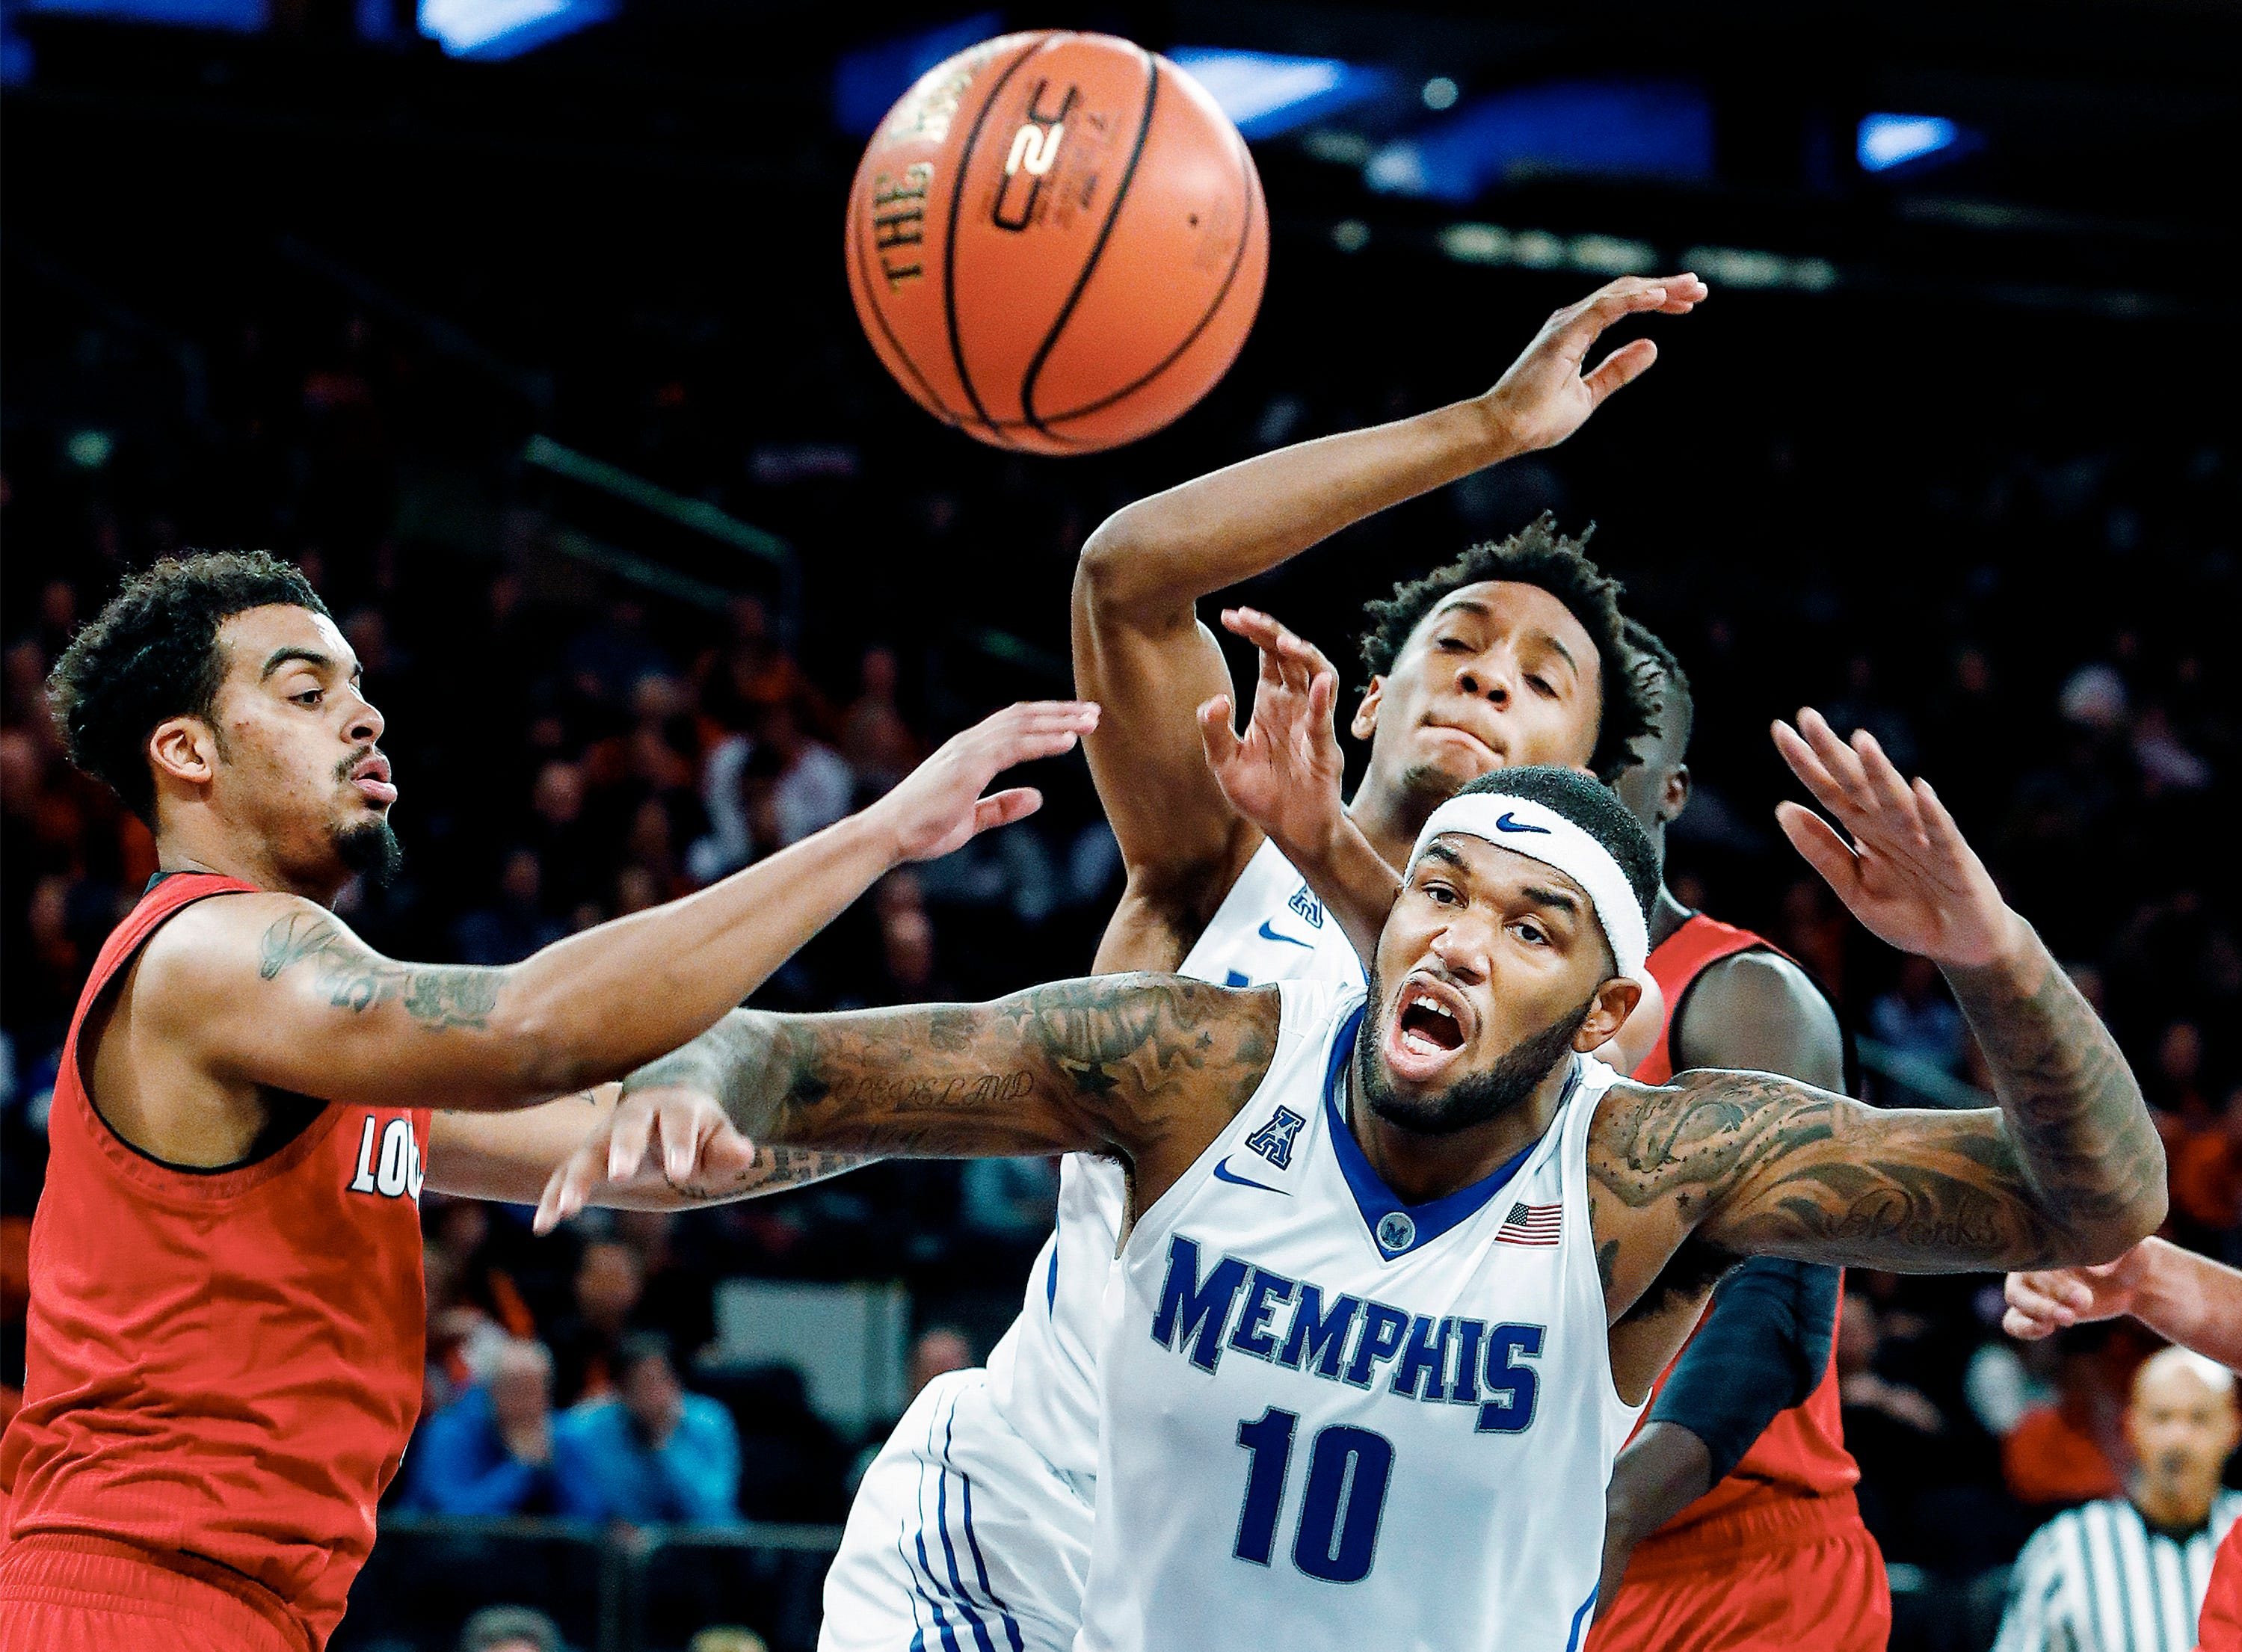 Memphis teammates Mike Parks Jr. (bottom right) and Jamal Johnson (top right) can not hang onto a rebound against Louisville defender Quentin Snider (left) during second half action at Madison Square Garden in New York, Saturday, December 16, 2017.